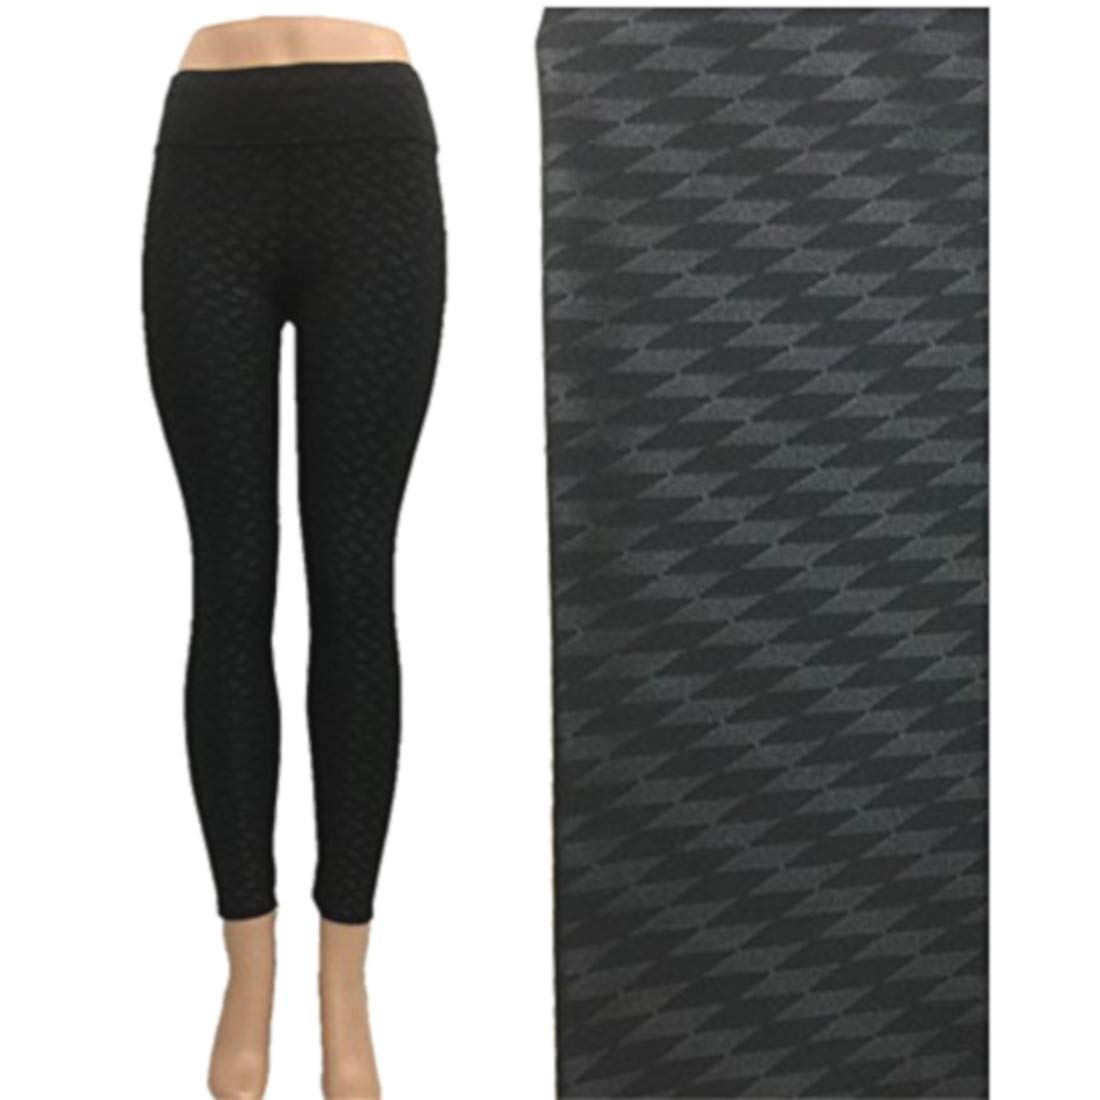 61ede4f15cb6f Women's Black Embossed Print Patterned Yoga Pants Leggings at Amazon  Women's Clothing store: